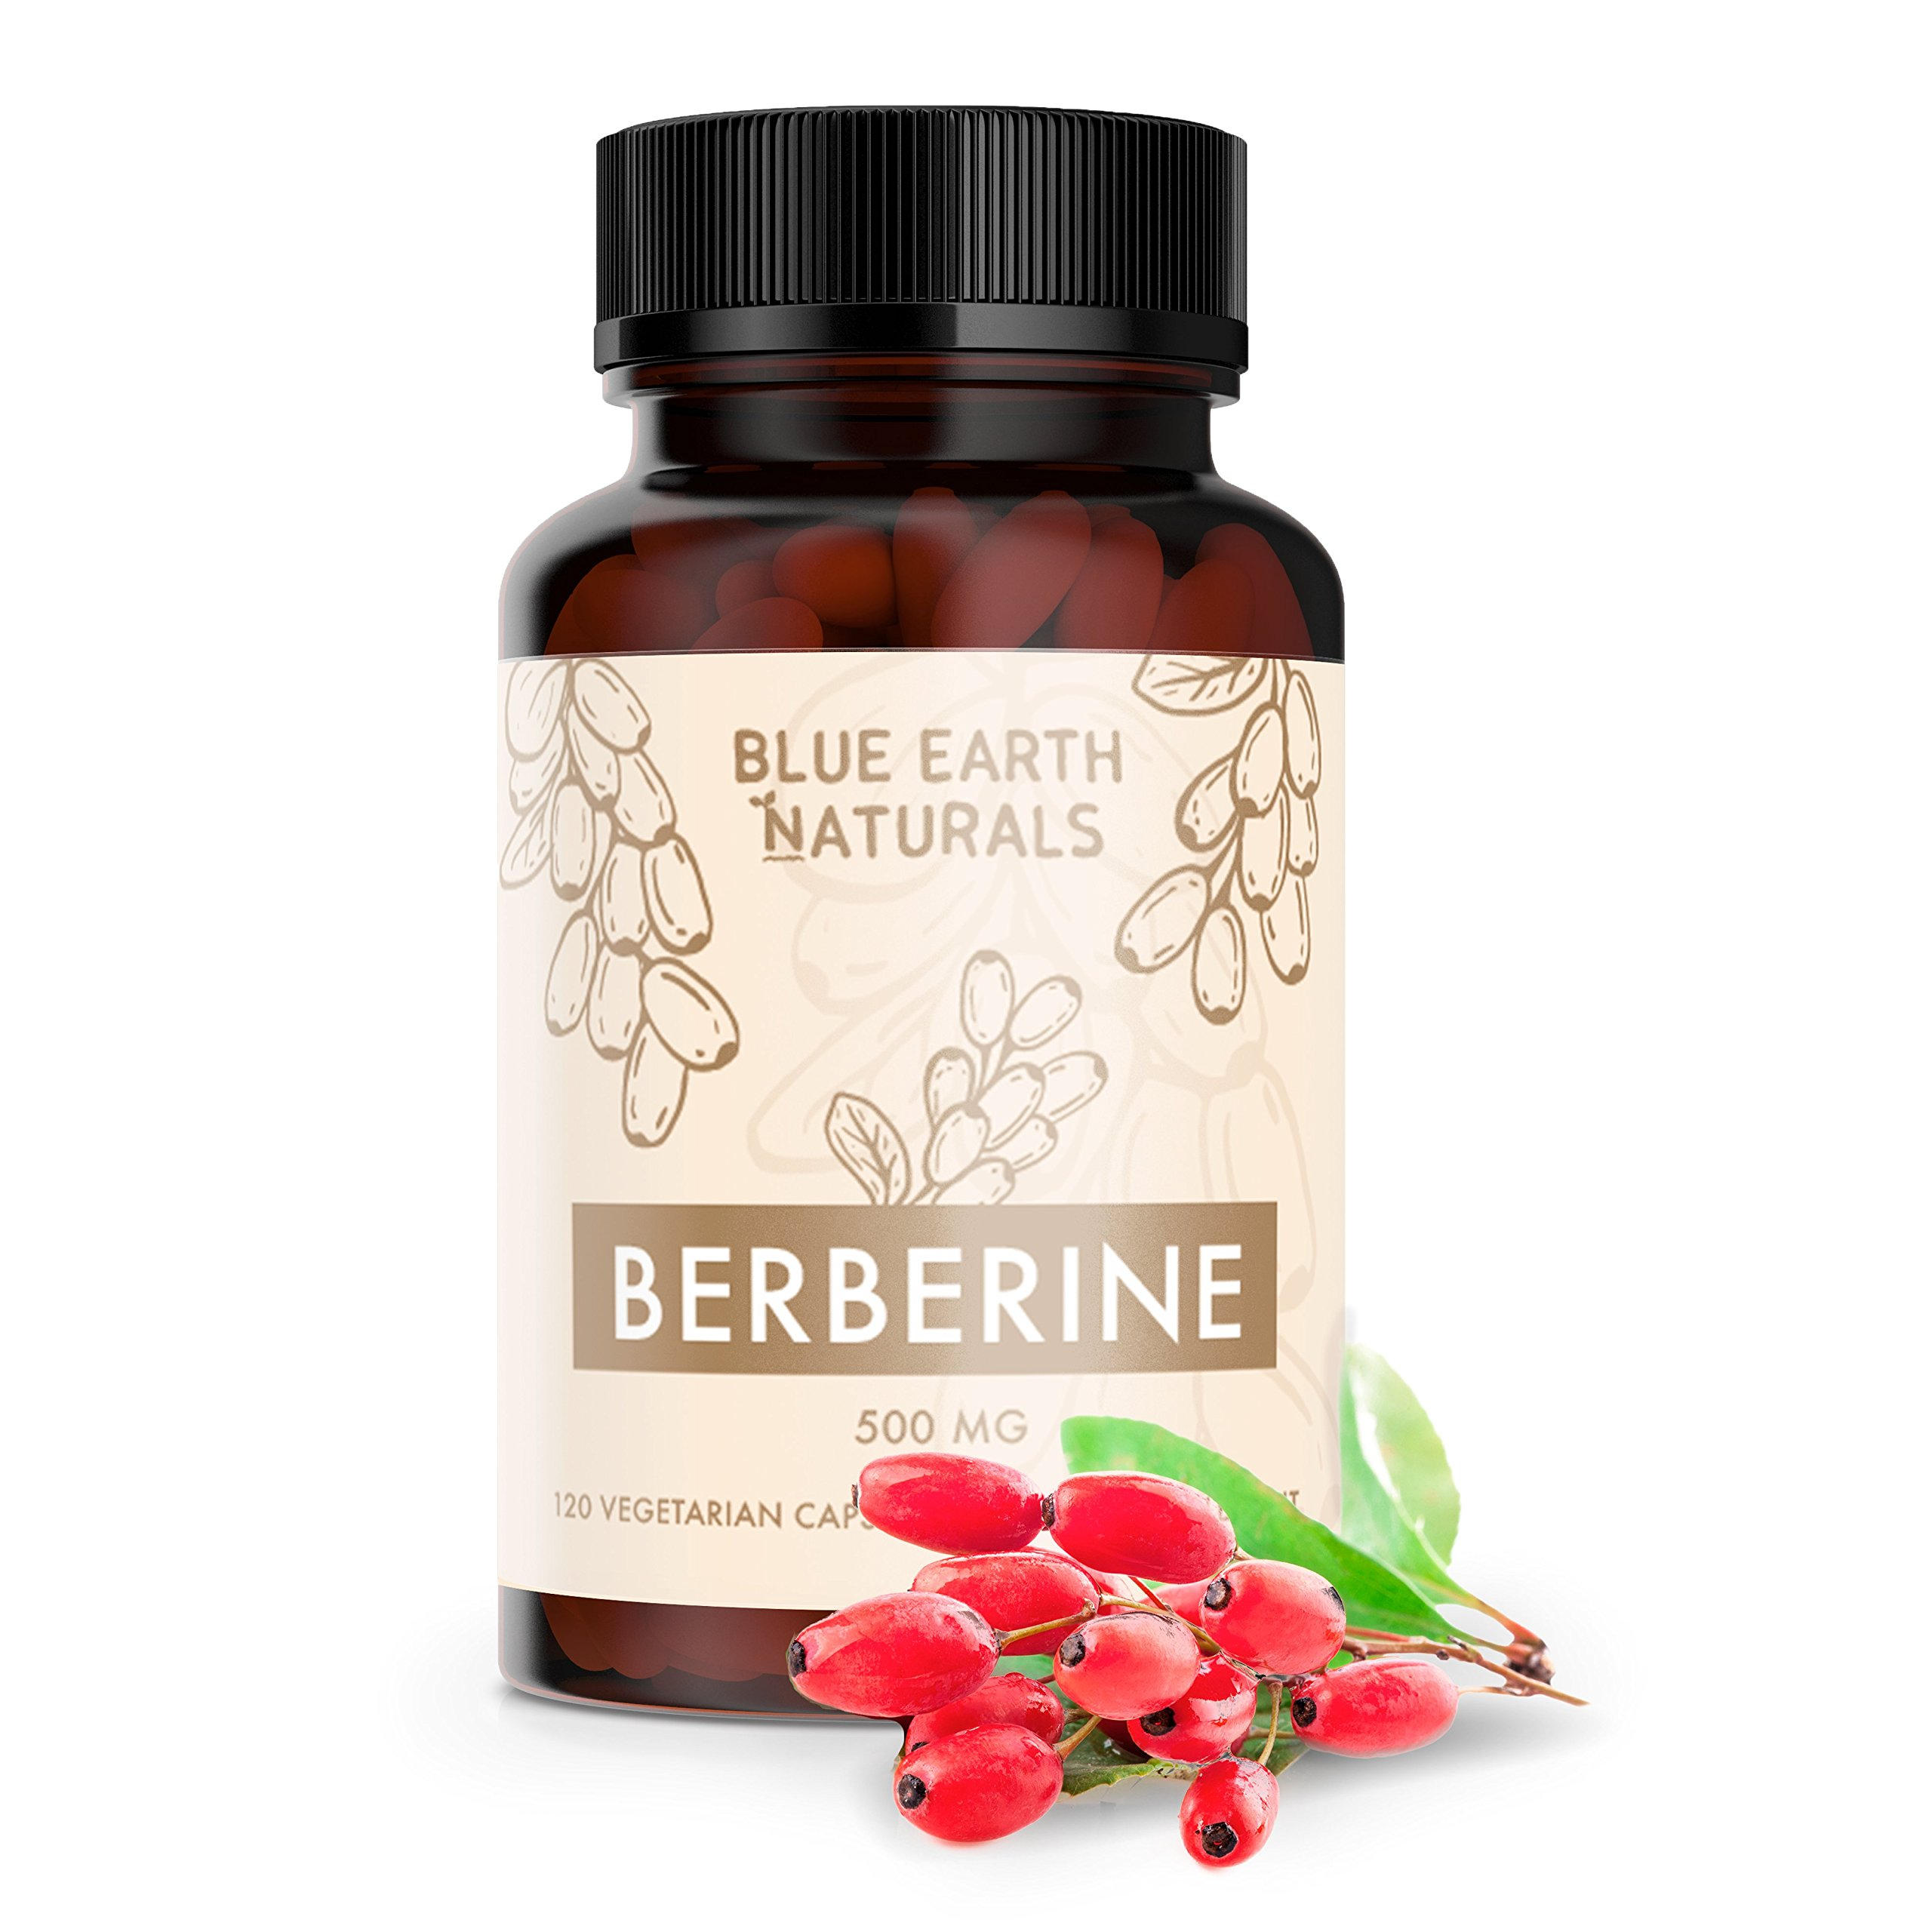 All Natural Berberine HCl 500 mg 120 Vegetarian Capsules